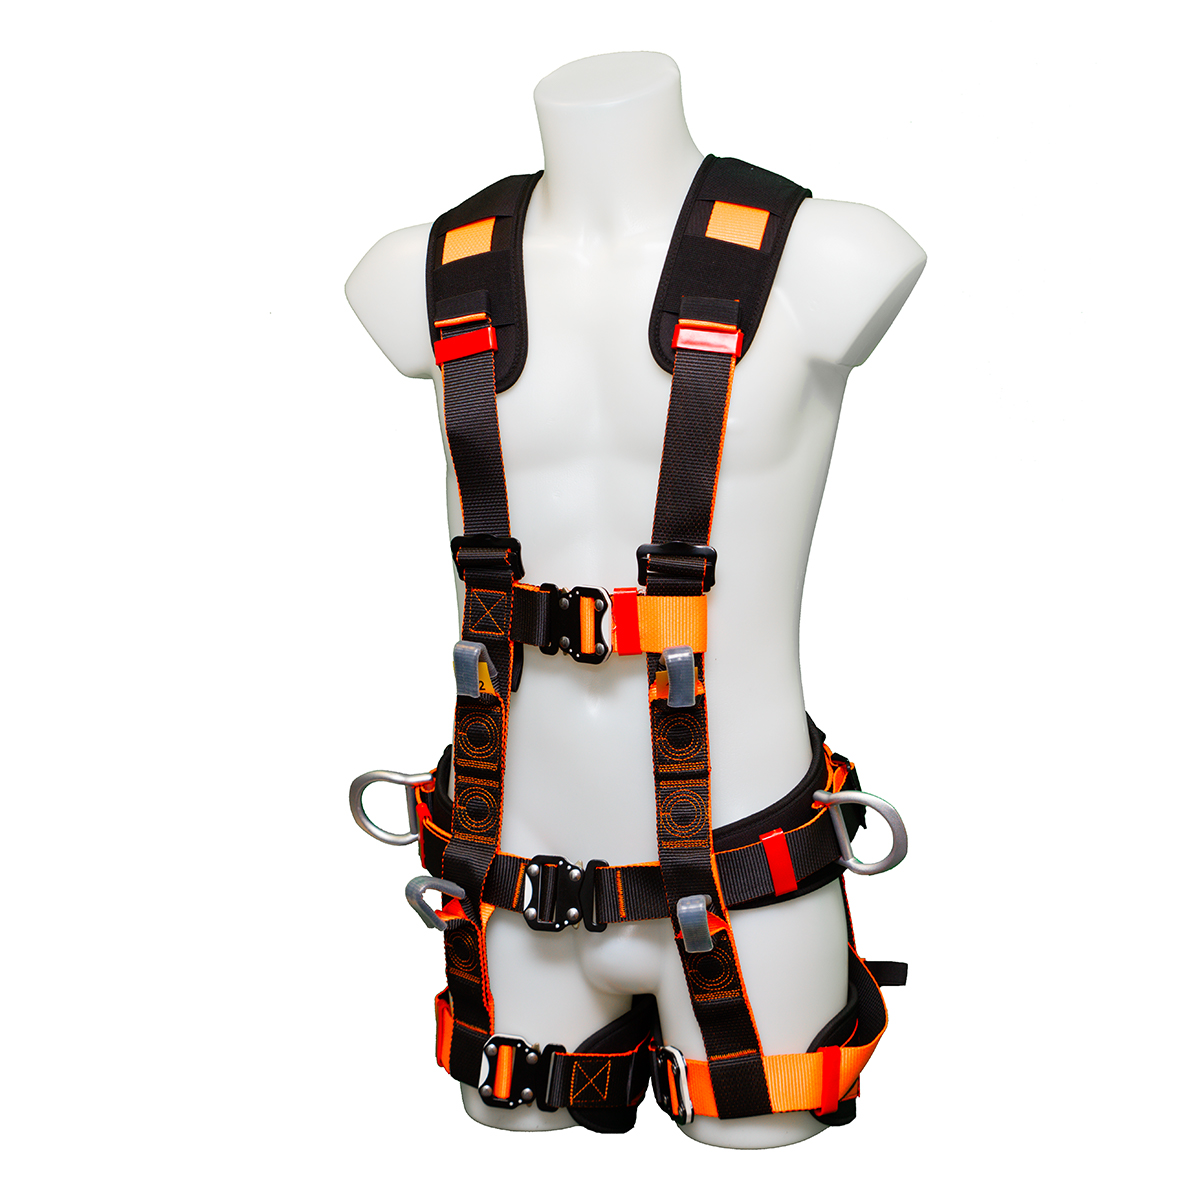 7 point harness